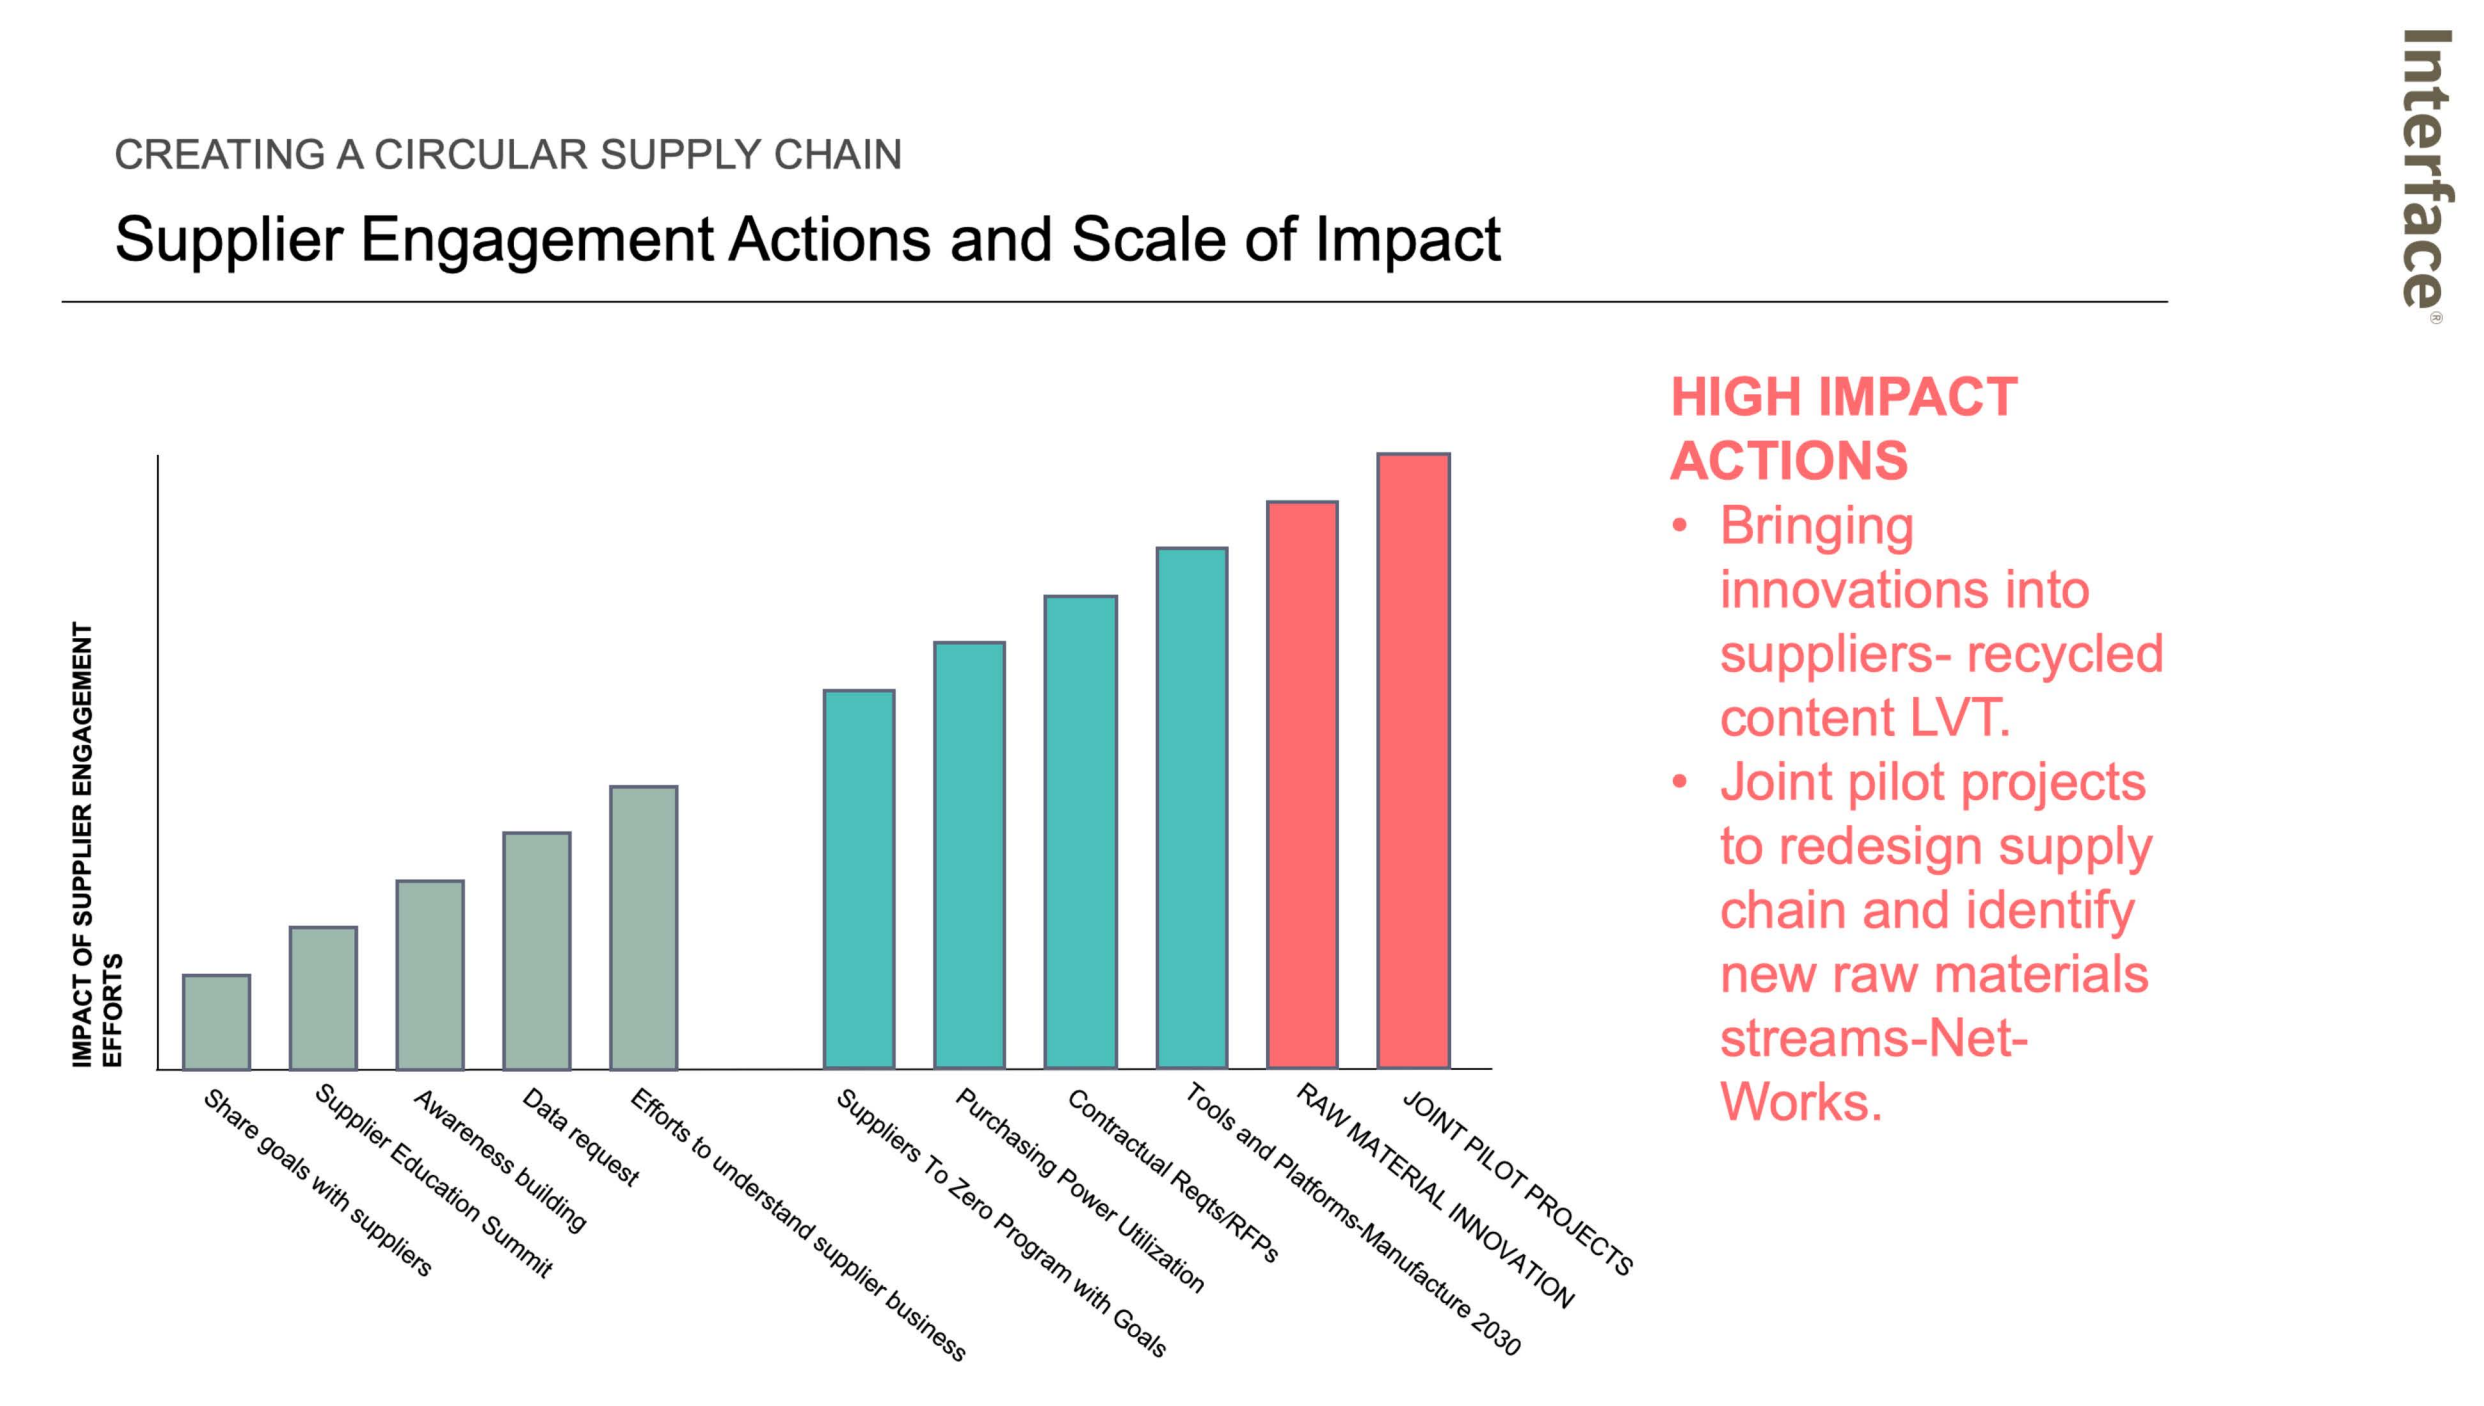 Interface graphic showing high impact supplier engagement actions